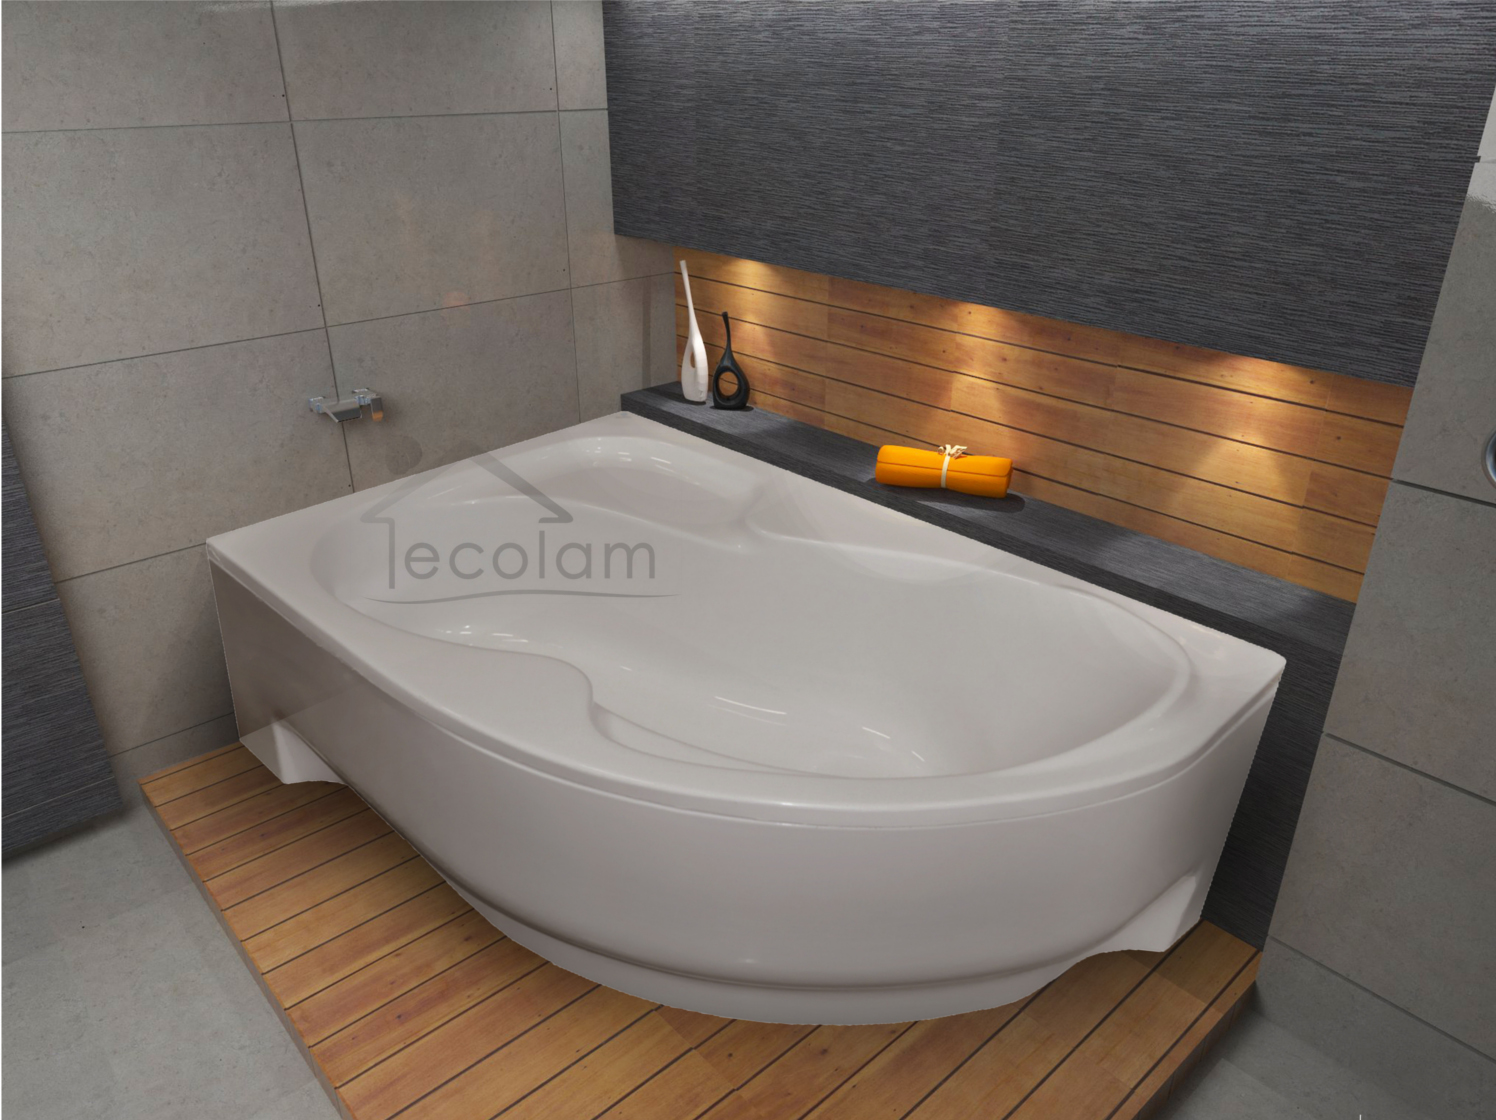 badewanne wanne eckwanne acryl 160 x 100 cm sch rze wannentr ger ablauf links fo ebay. Black Bedroom Furniture Sets. Home Design Ideas